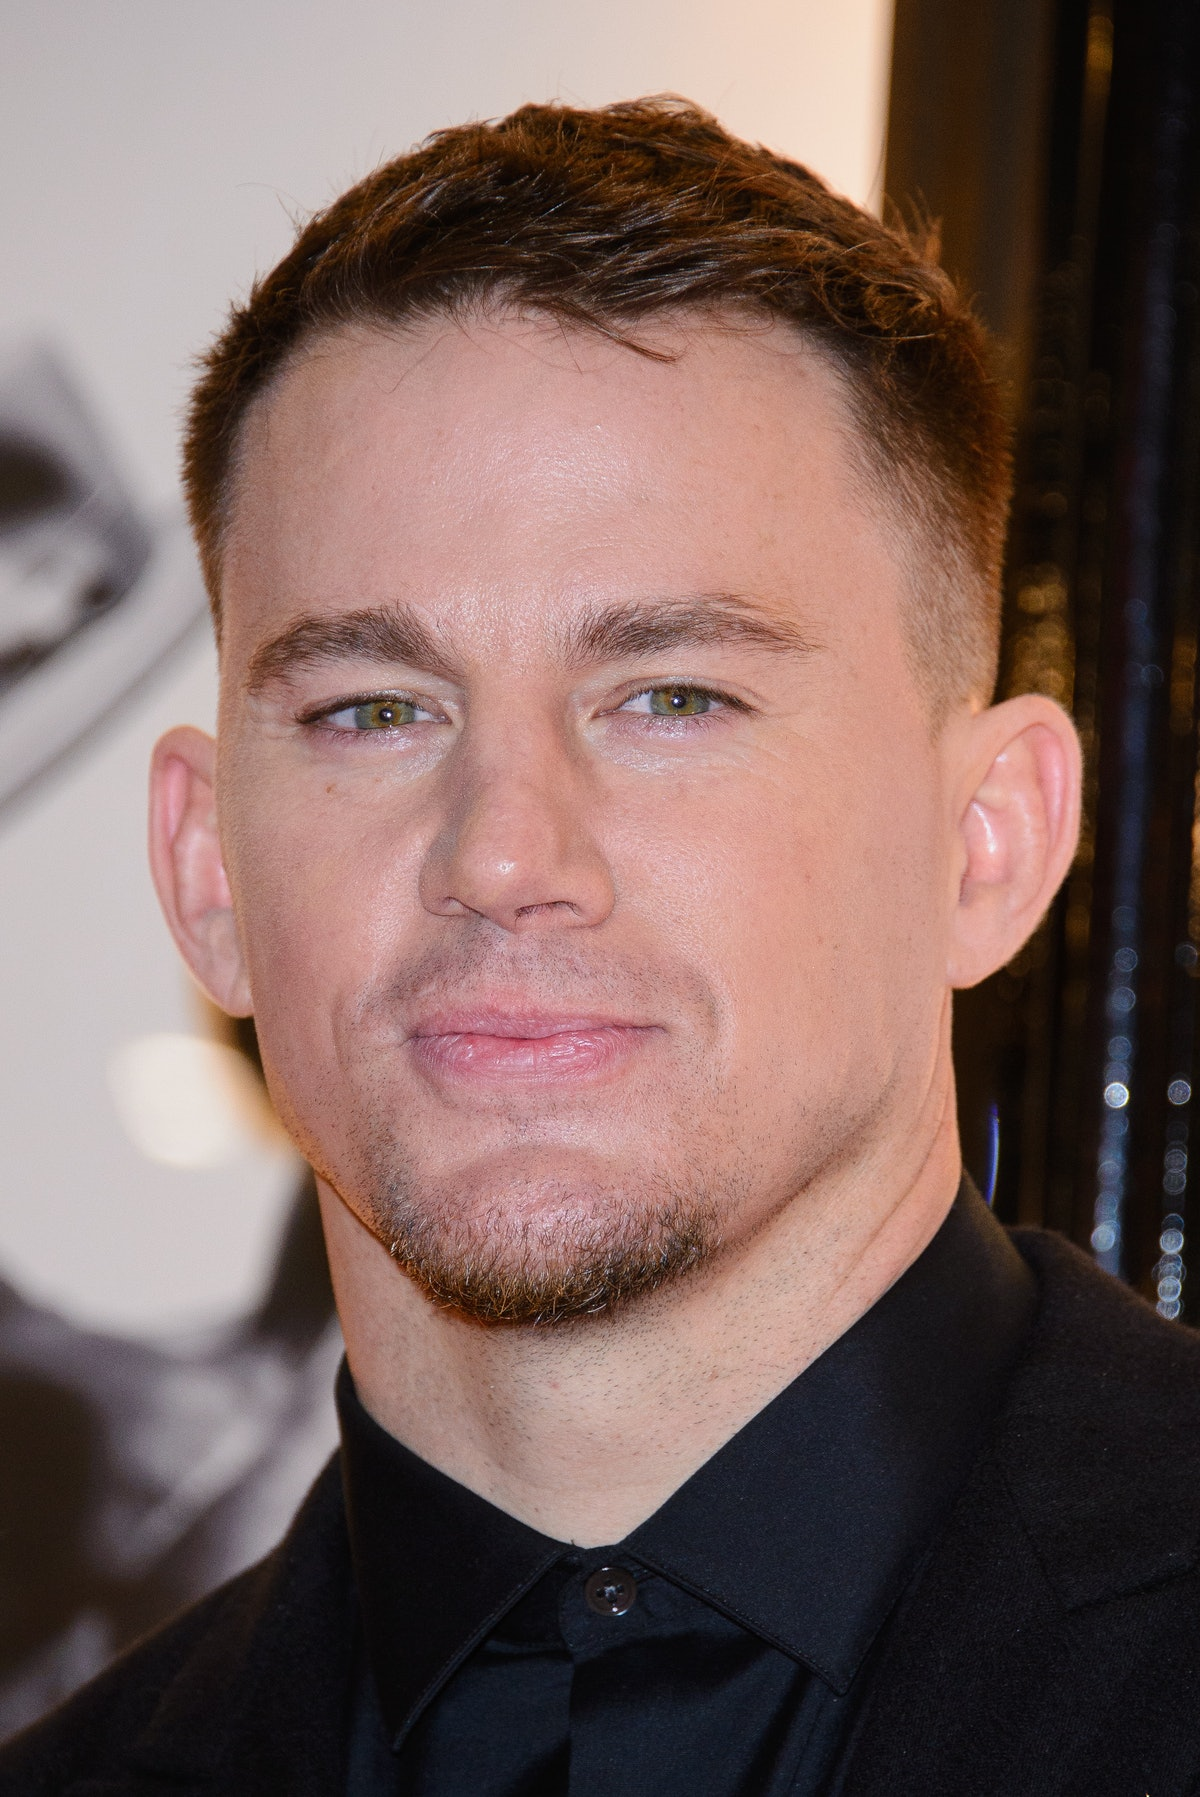 Channing Tatum Has Blonde Hair & The Actor Wants To Know What His Fans Think — PHOTO